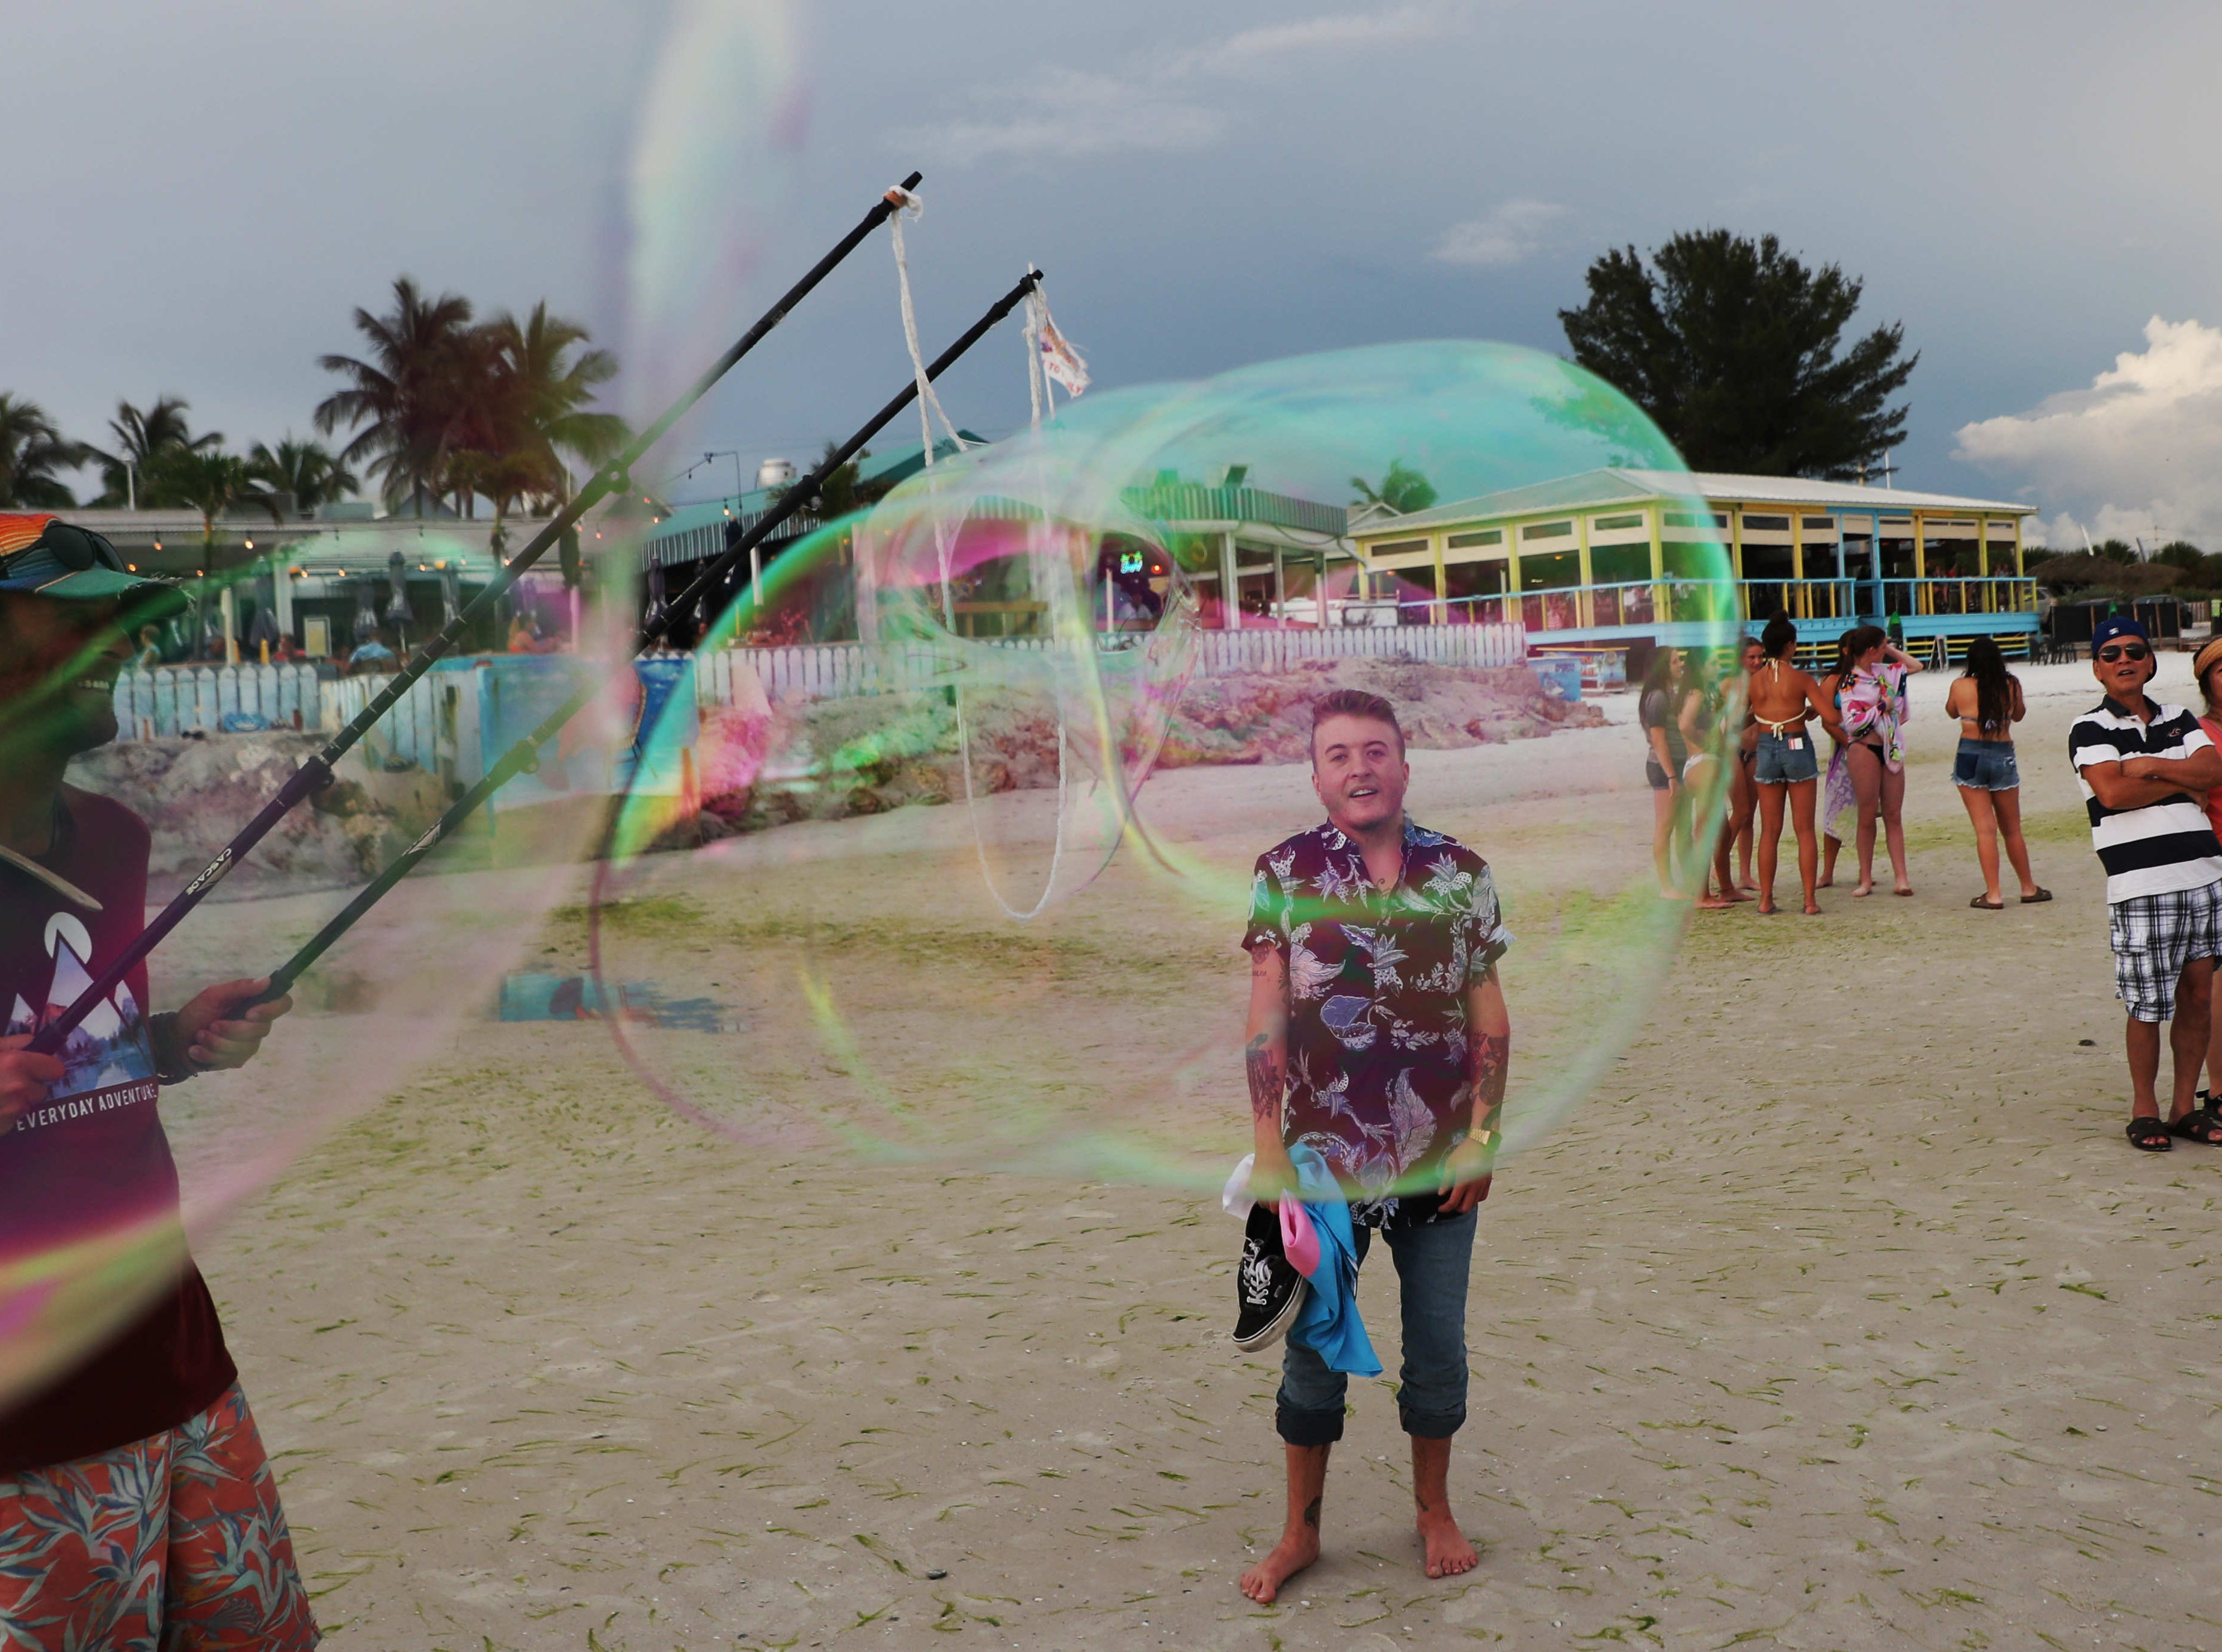 Kasey Fraize watches as Paul Saccone blows giant bubbles for the pleasure of Fort Myers Beach goers on a recent evening. Fraize struggled through middle and high school with his female identity, at 15 he knew he wanted to transition but waited until college to avoid the hassles of parents, teachers and peers.